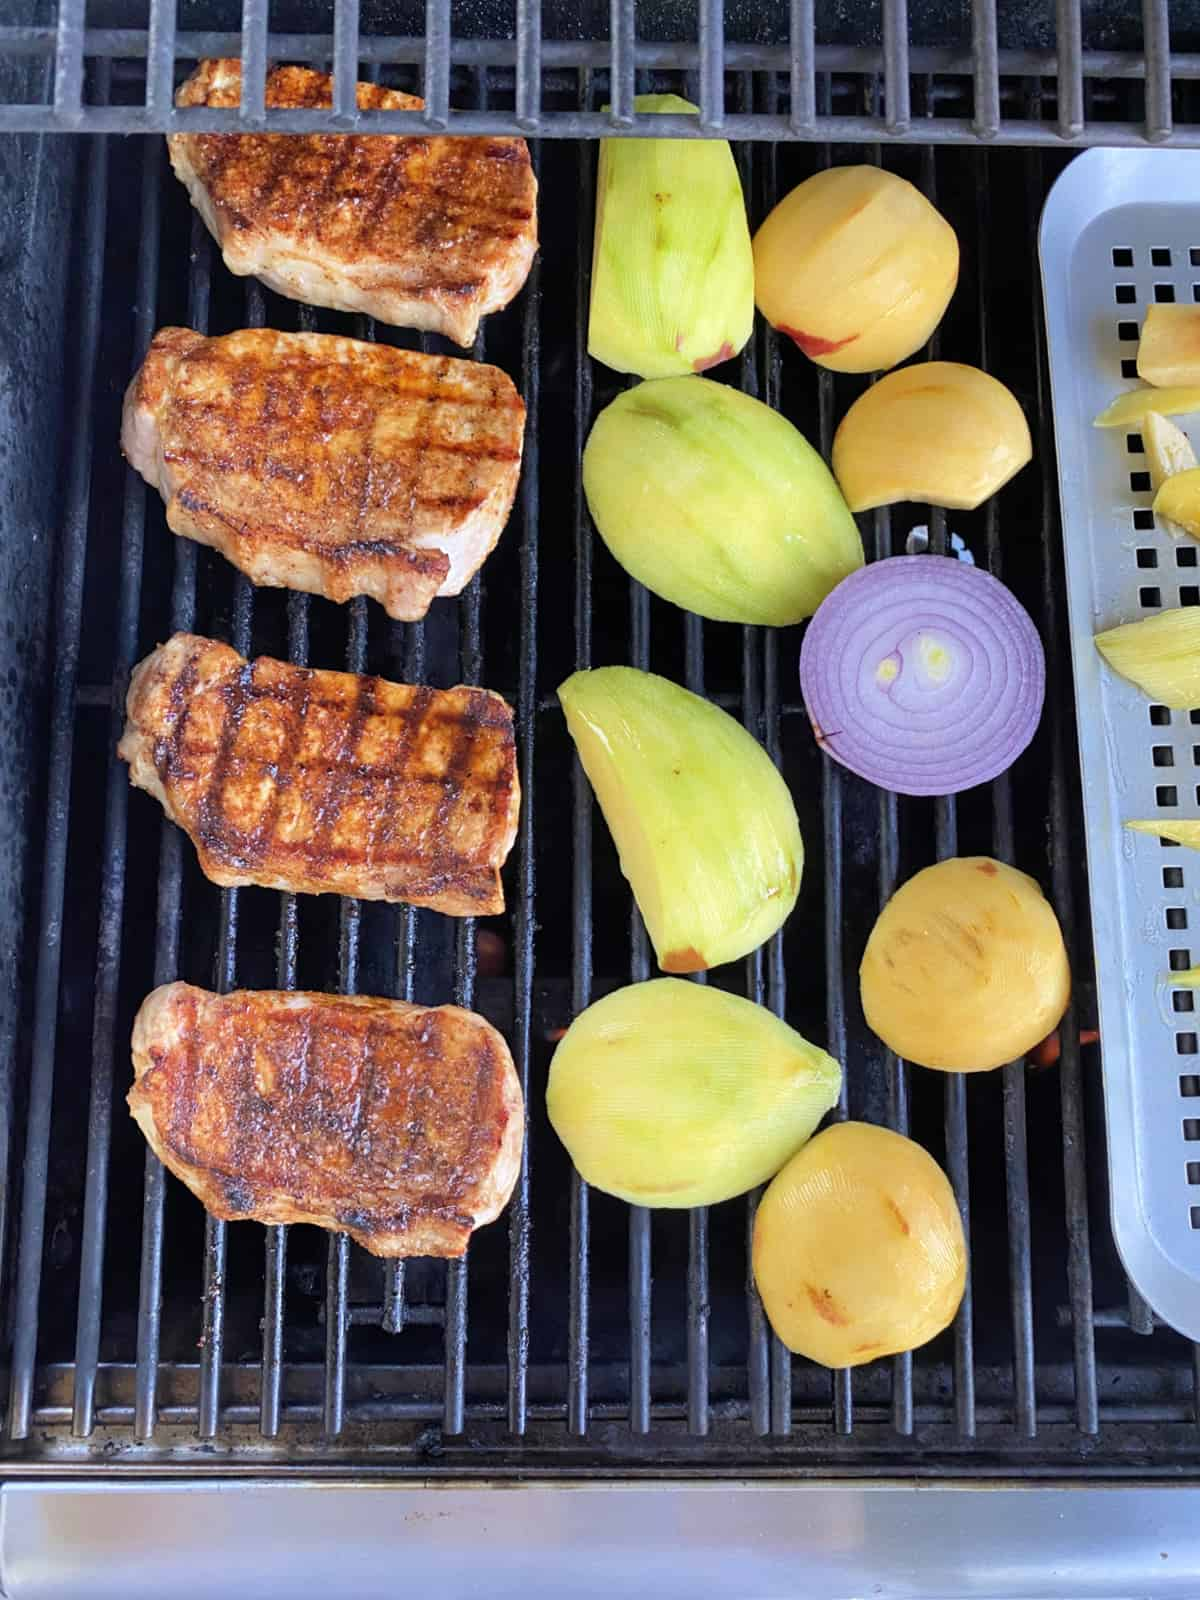 Top view of 4 grilled pork chops, sliced fruit and a red onion on a grill.